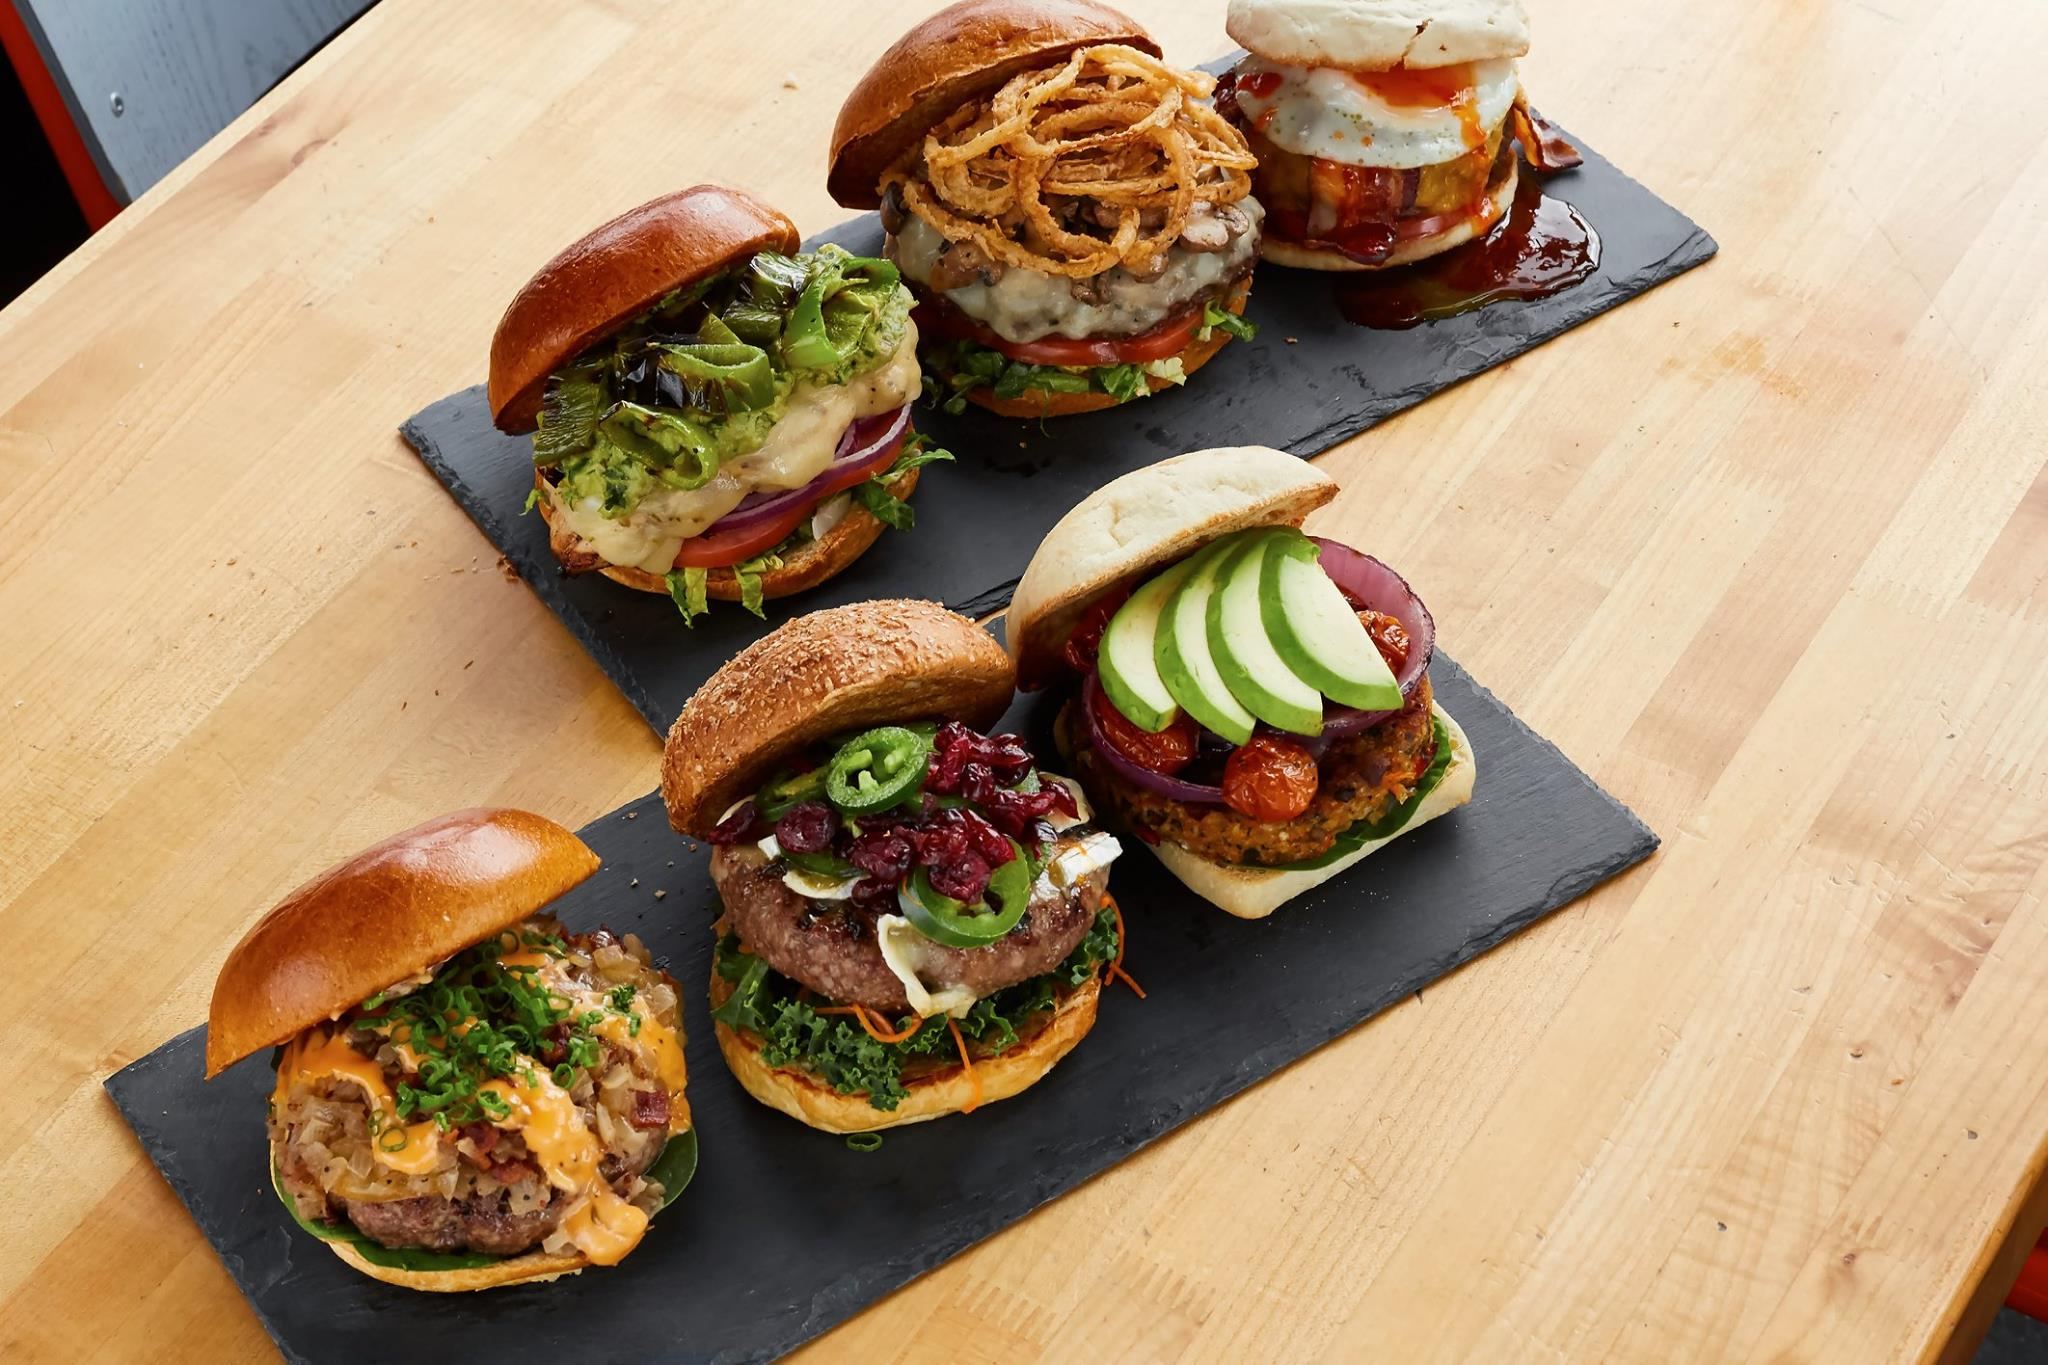 The Counter Walnut Creek reviews | Burgers at 1699 N California Blvd - Walnut Creek CA